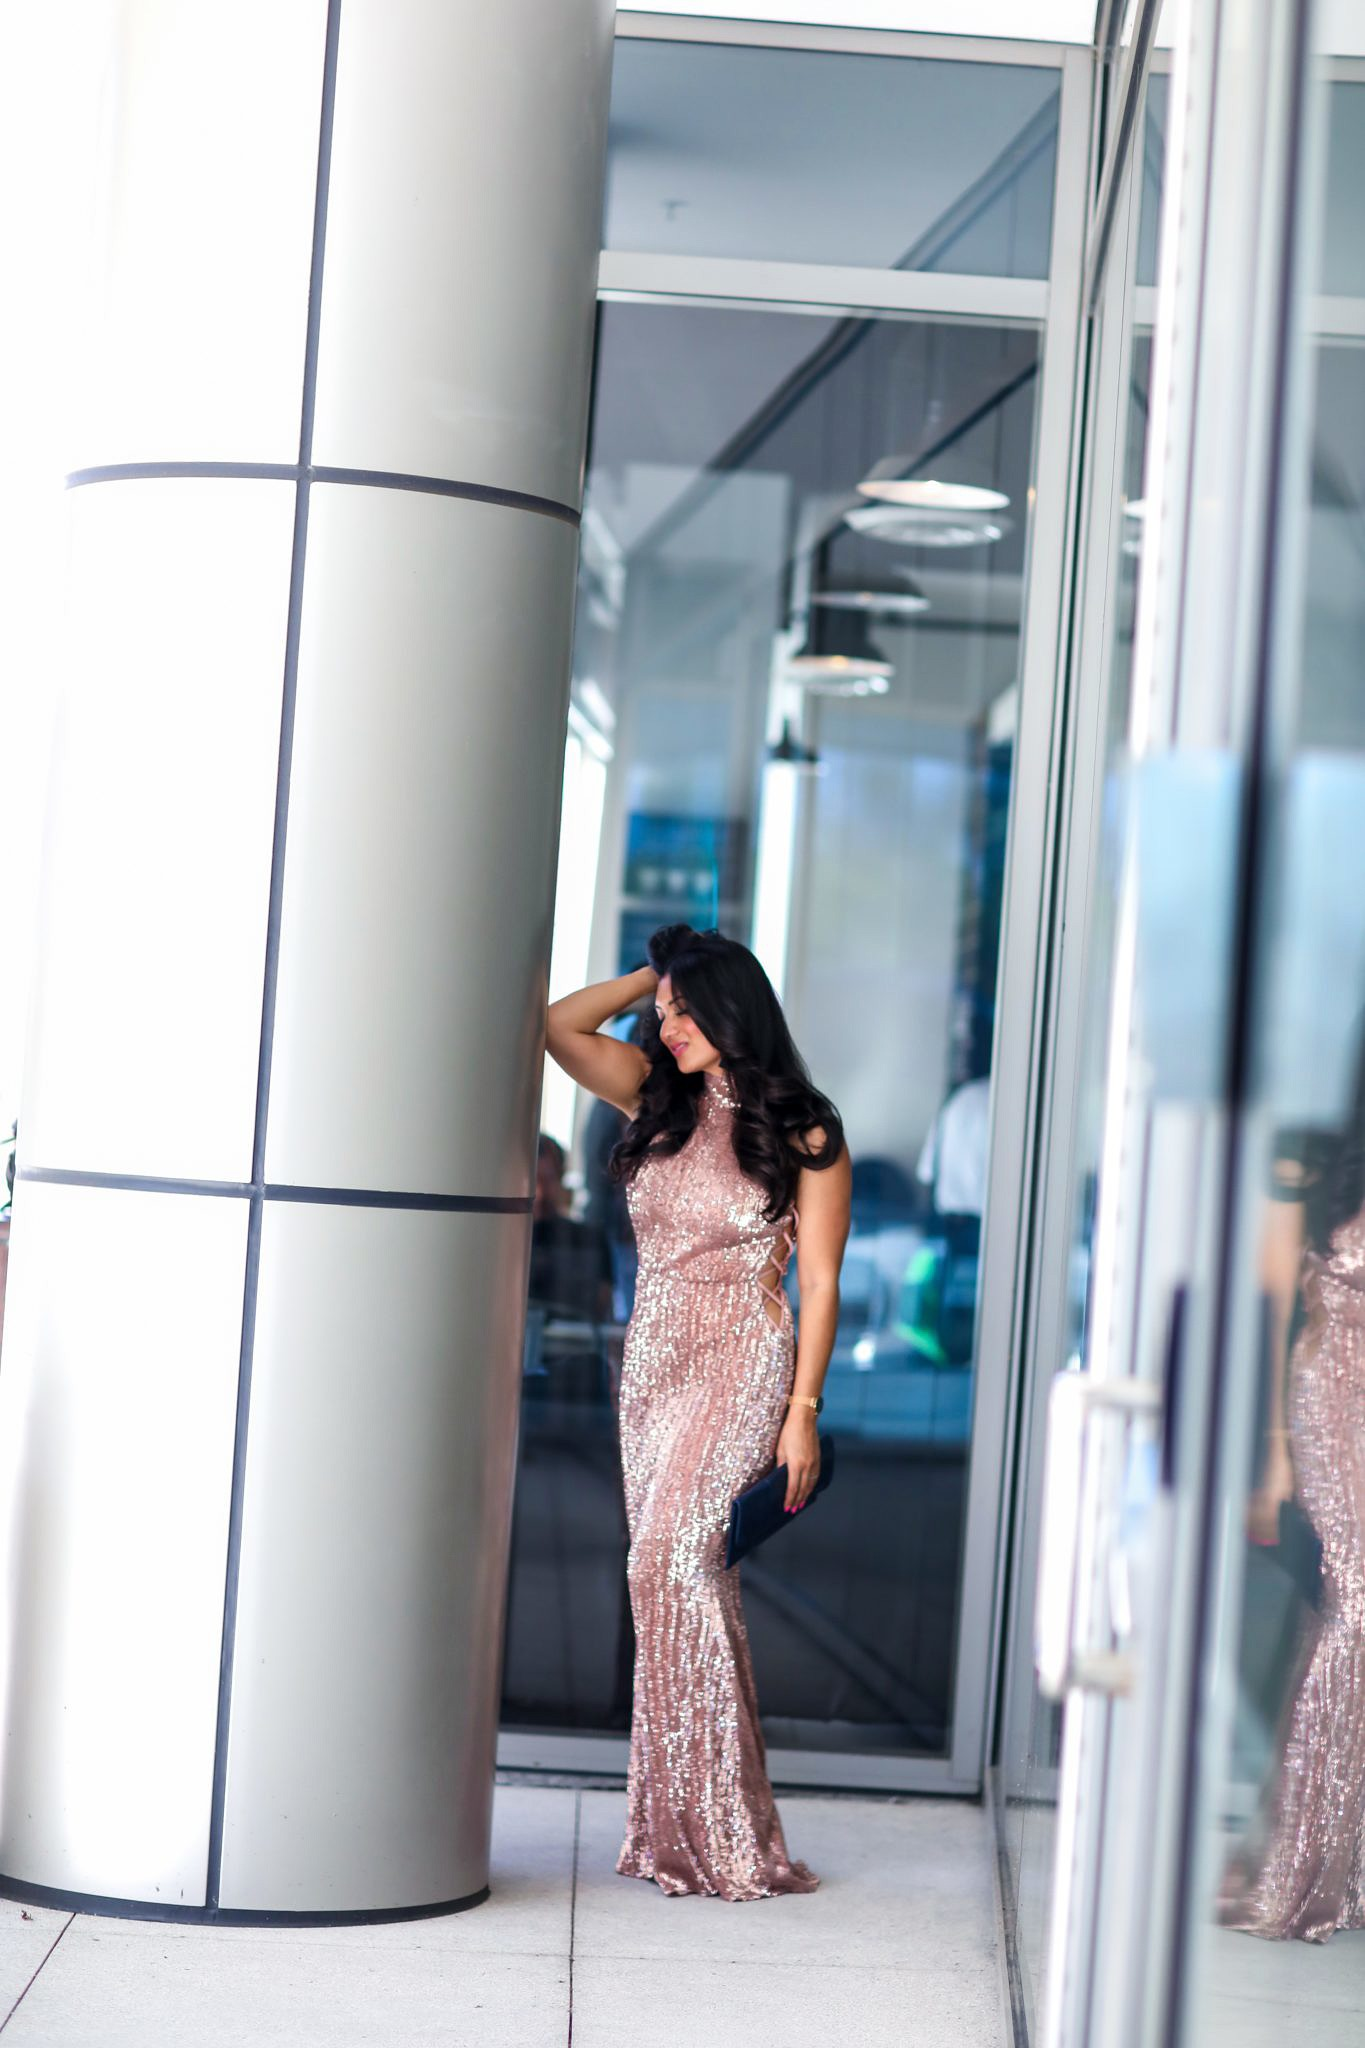 Sequin Maxi Dress. Rose Gold Bodycon Maxi Dress from Pretty Missy - Sequin Maxi Dress. Rose Gold Bodycon Maxi Dress from Pretty Missy by popular Orange County fashion blogger To Thine Own Style Be True